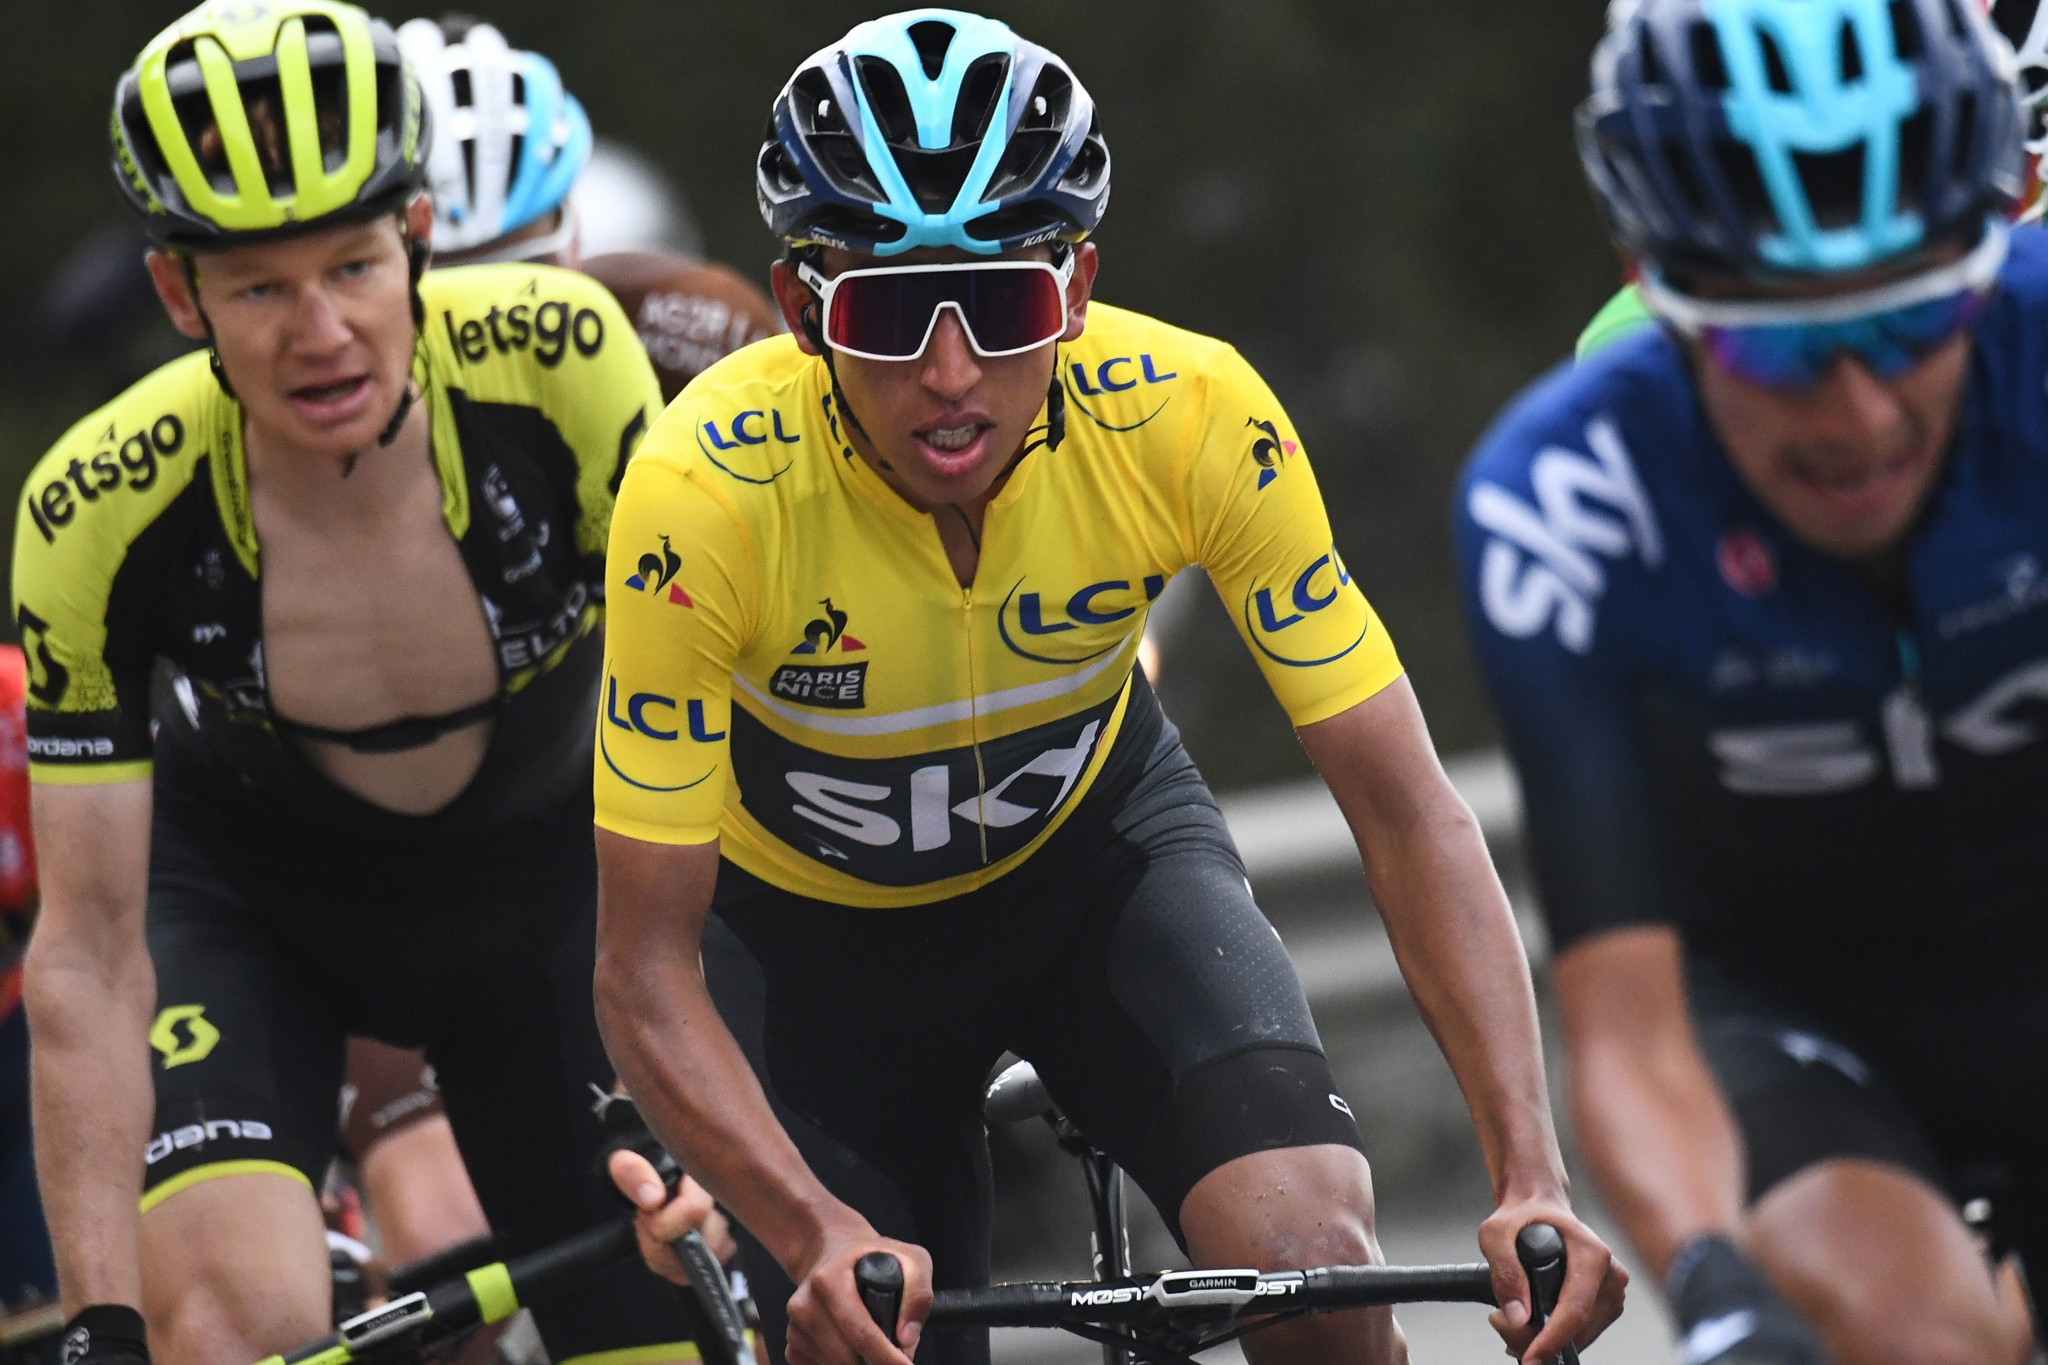 Paris-Nice, won last year by Colombia's Egan Bernal who will not be defending his title, is set to begin tomorrow ©Getty Images